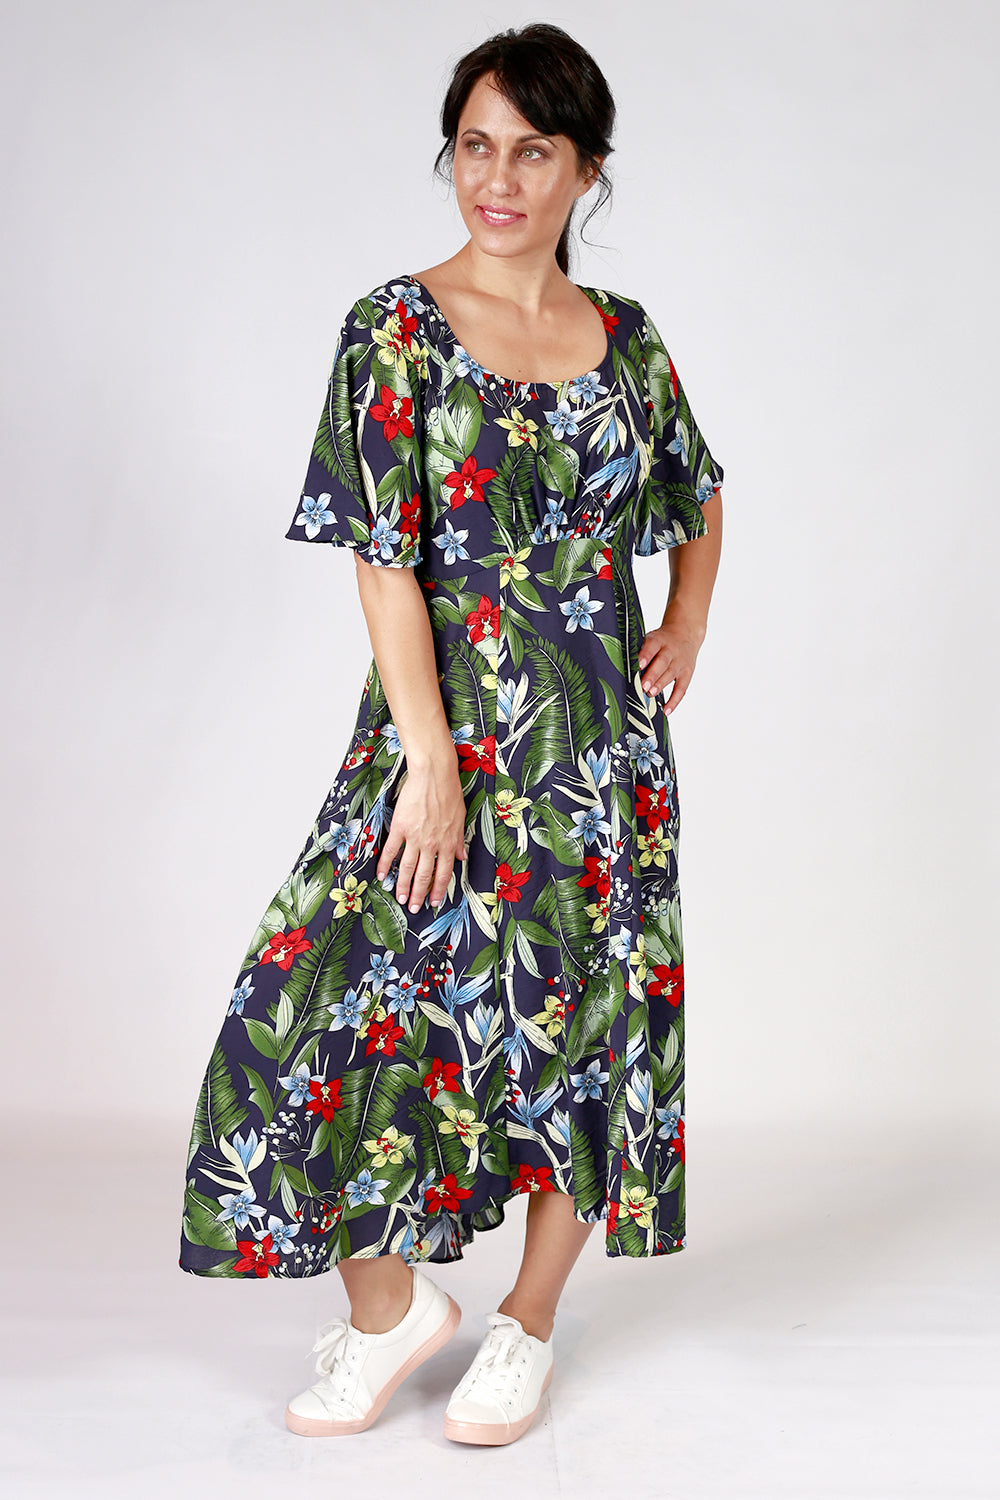 The Down the Line Dress | Designer Dress NZ | Annah Stretton | Designer Fashion NZ | Navy Dress NZ | Floral Dress NZ